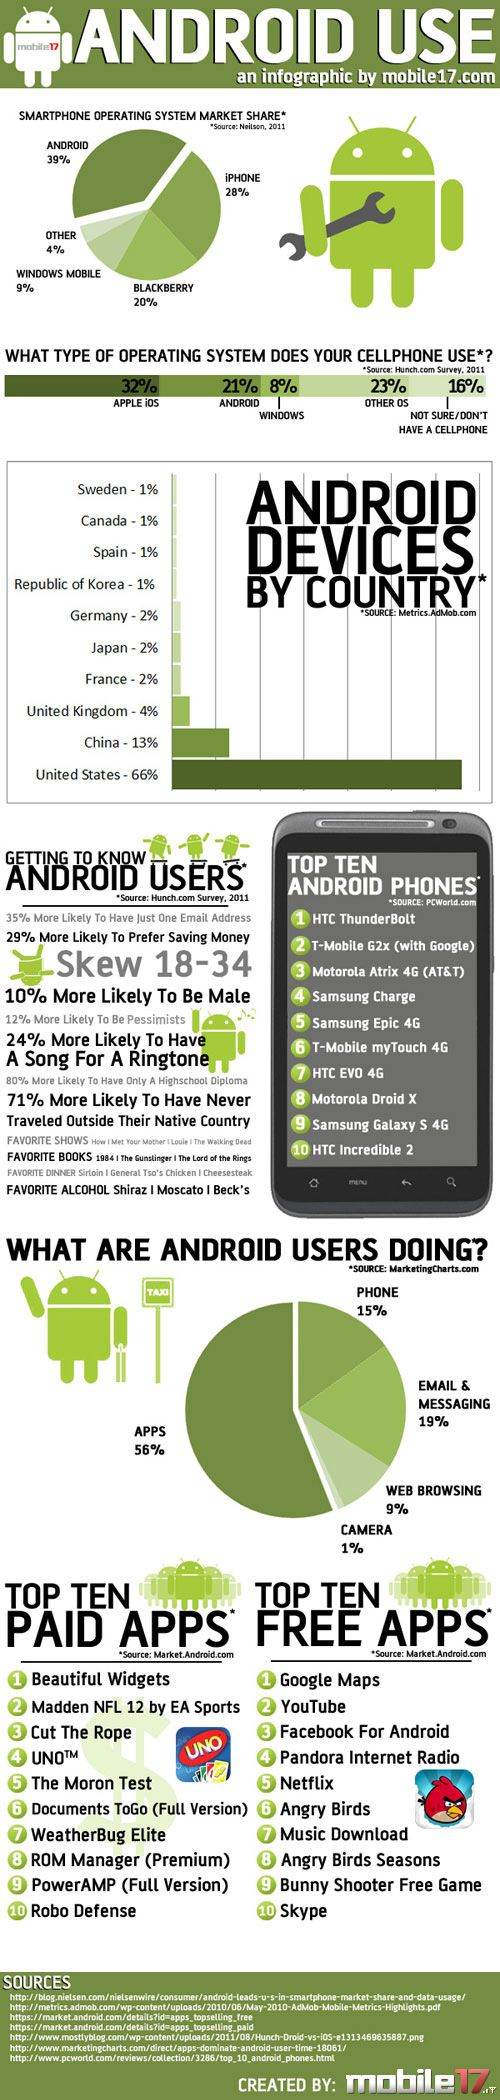 Inside the World of Android Usage    How is the Android taking over the world?  Look at this data aggregated from Nielsen, AdMob, PCWorld, and Android Market created by Mobile17.    Read more: http://blog.hubspot.com/blog/tabid/6307/bid/25688/7-Awesome-New-Mobile-Marketing-Infographics.aspx#ixzz1nc8IEi1P